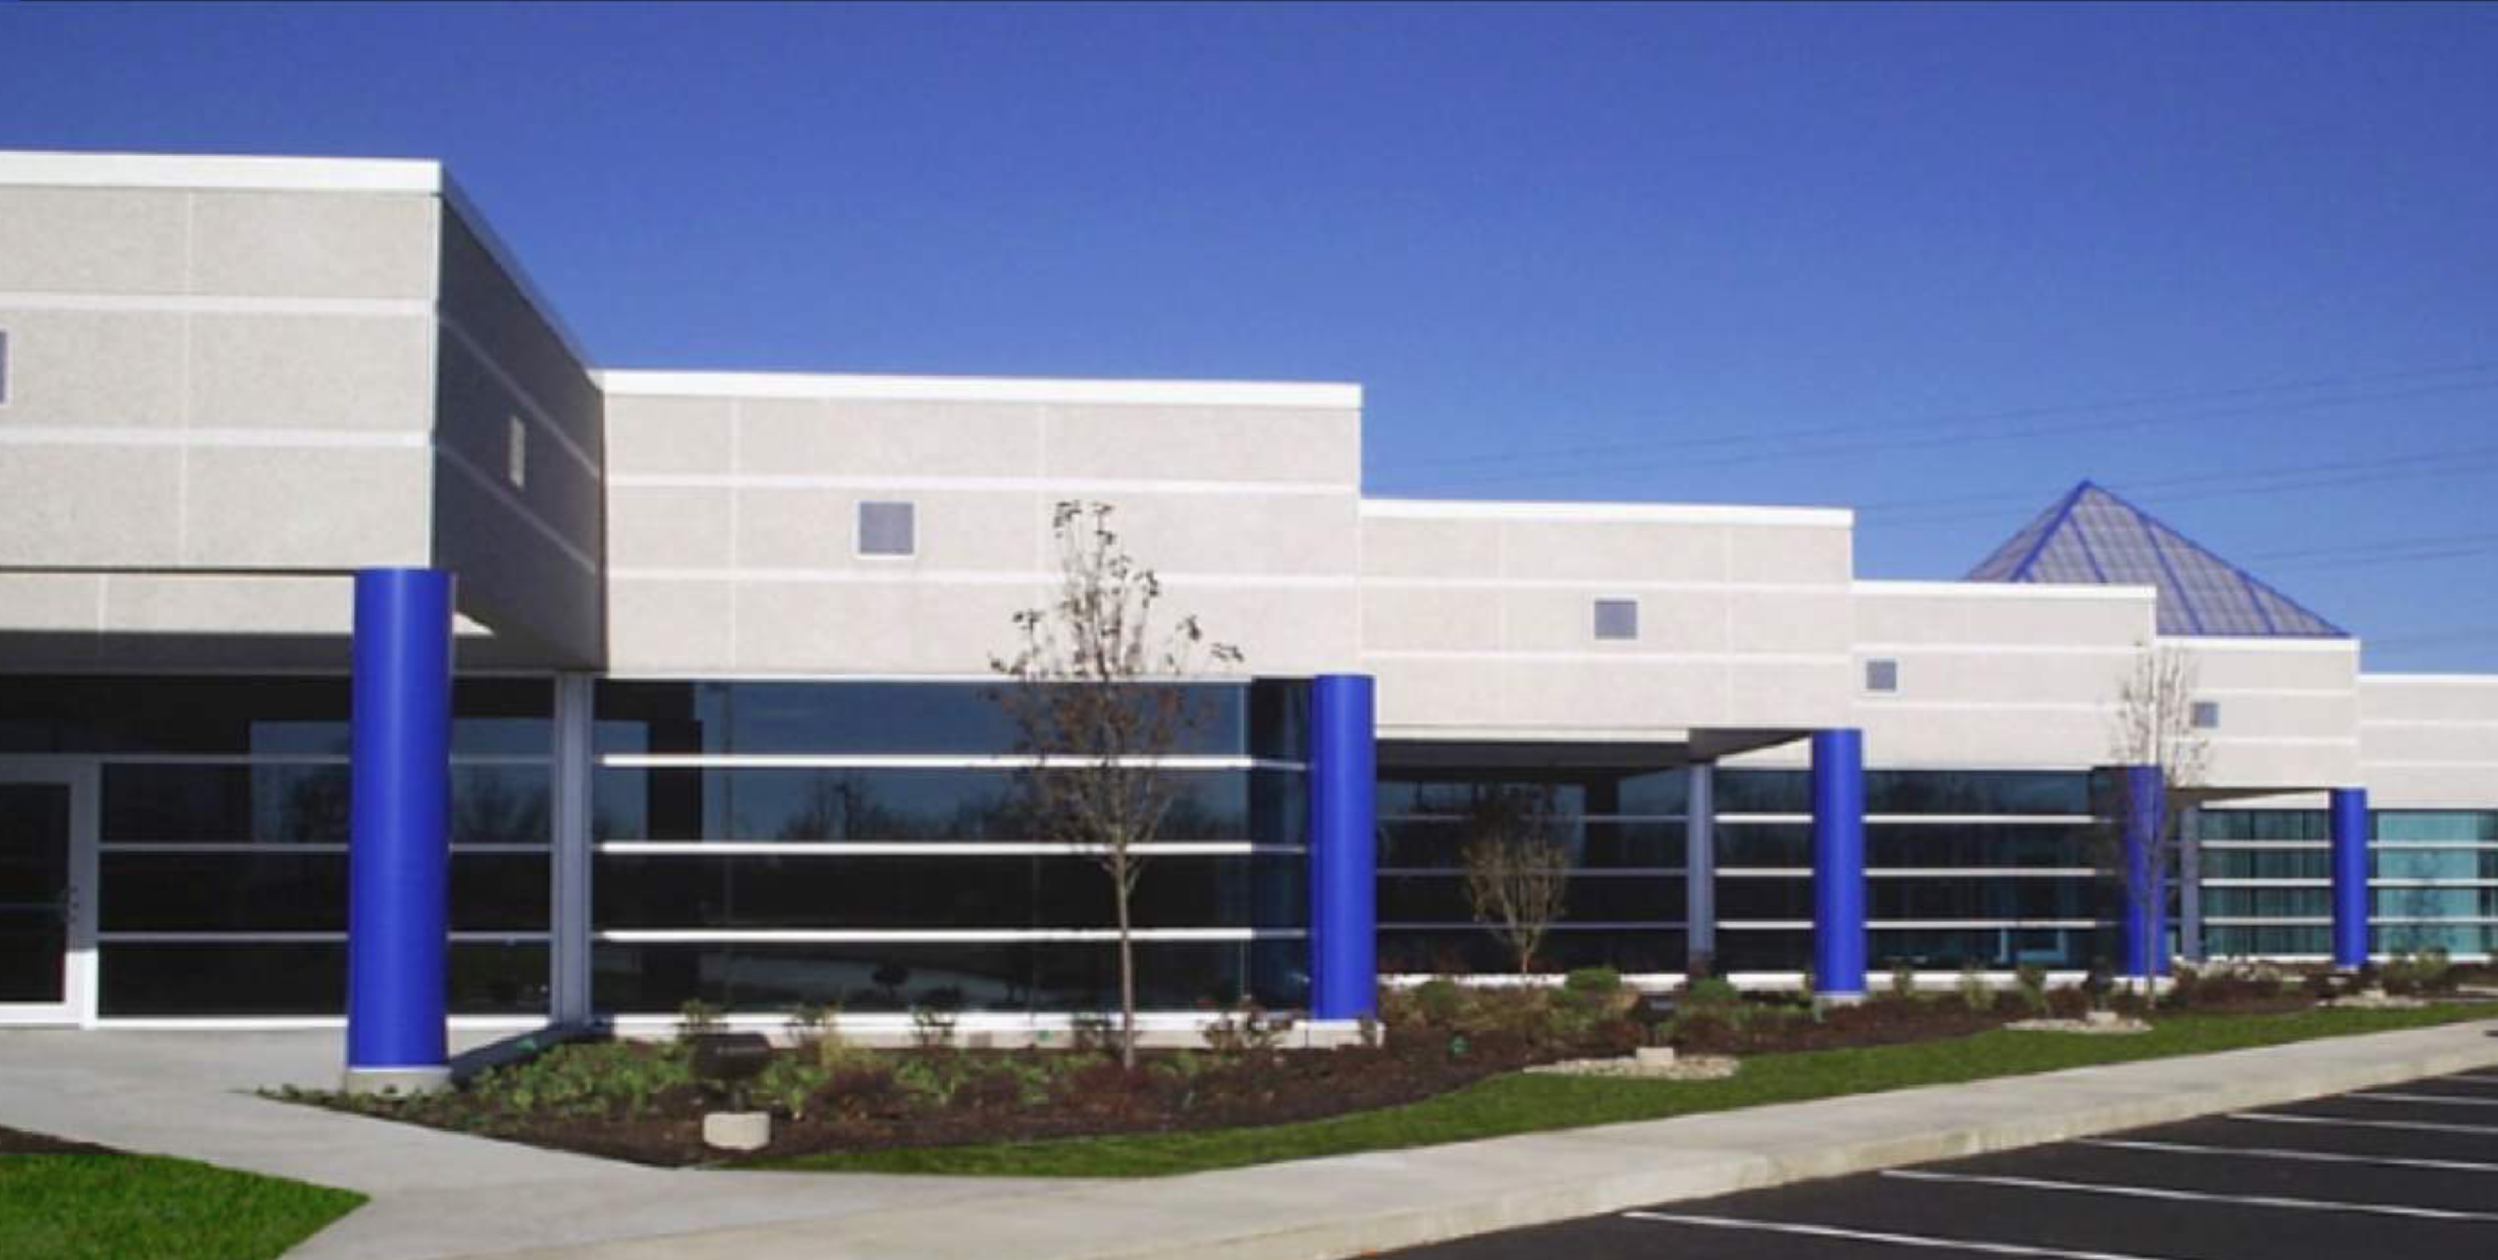 South Bend Data Center Image